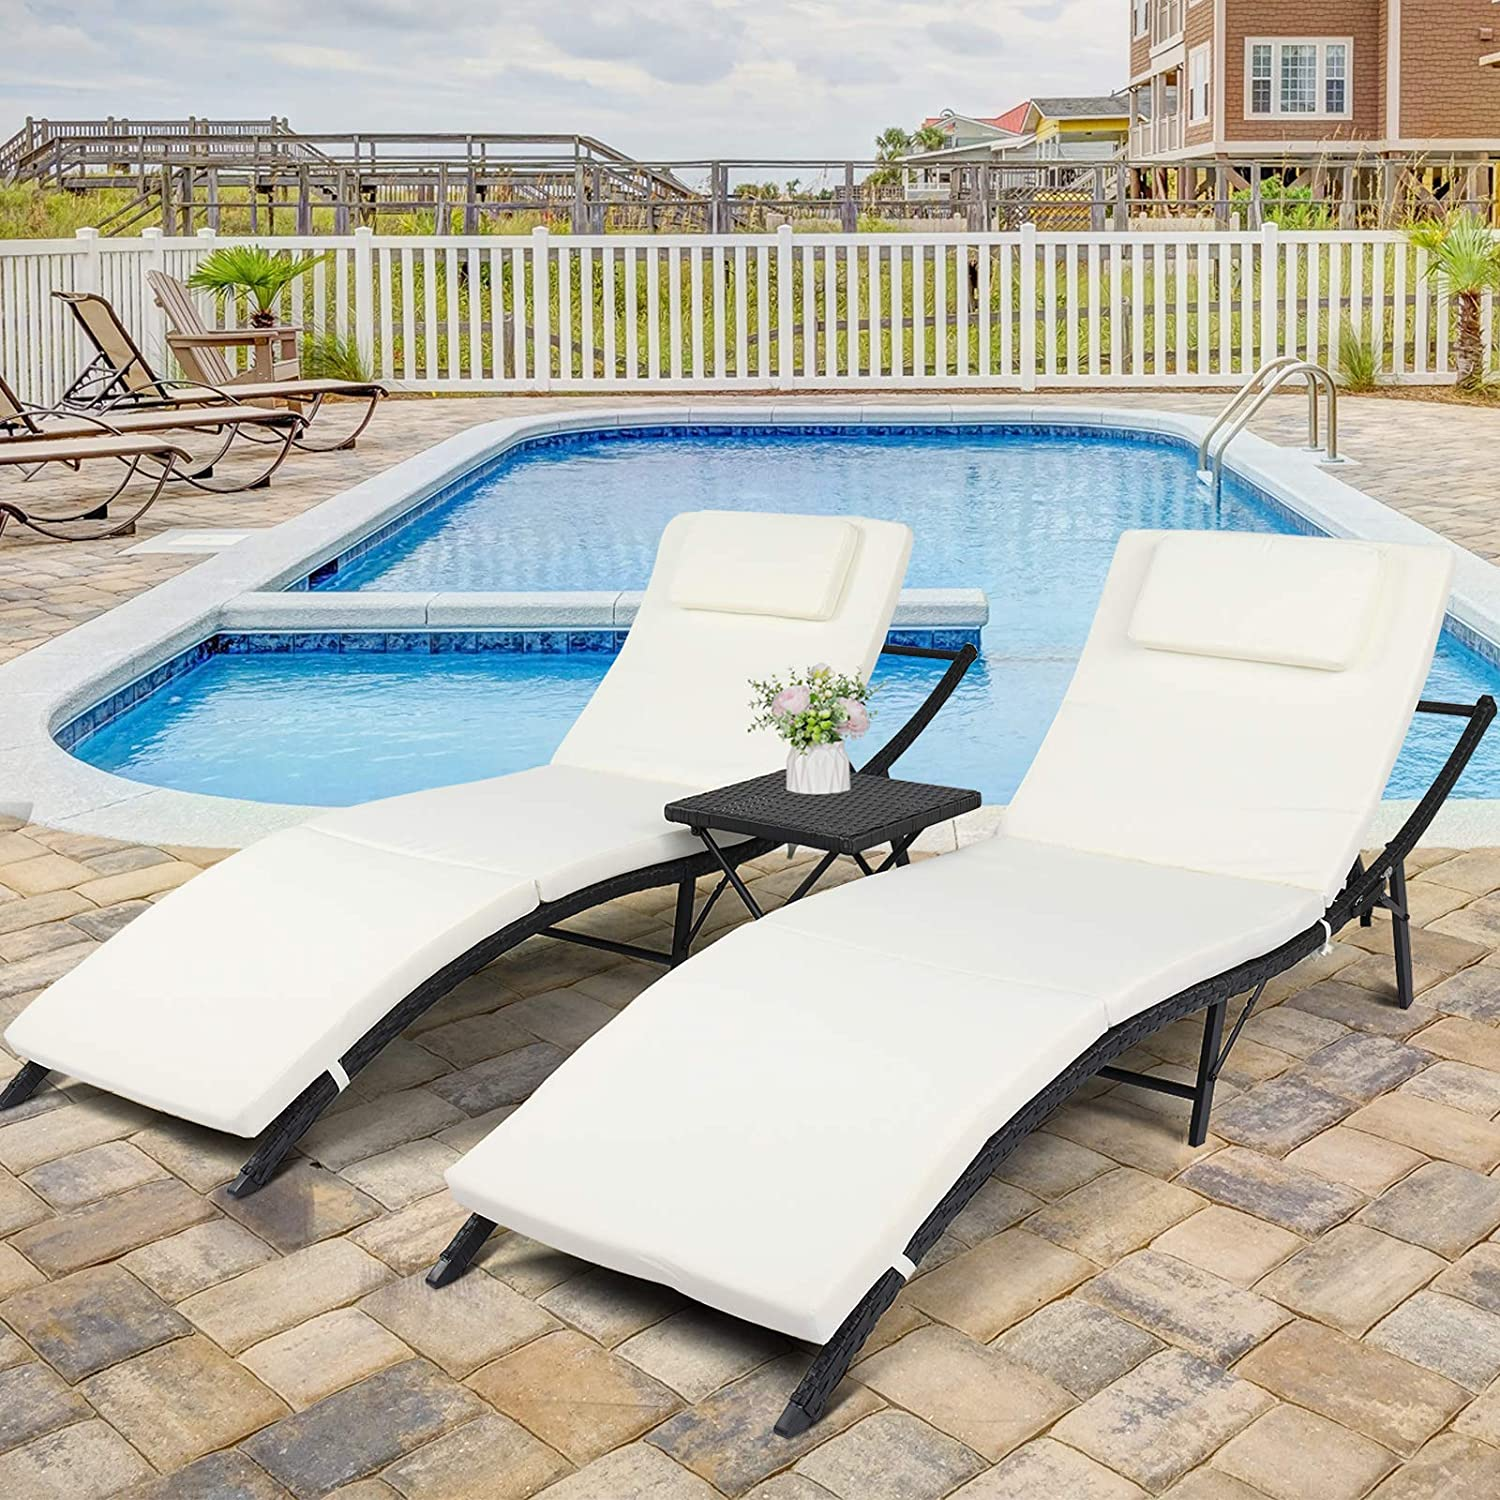 Patio Chaise Lounges Outdoor Lounge Chairs Rattan Pcs Adj Virginia Beach Mall Set Soldering 3